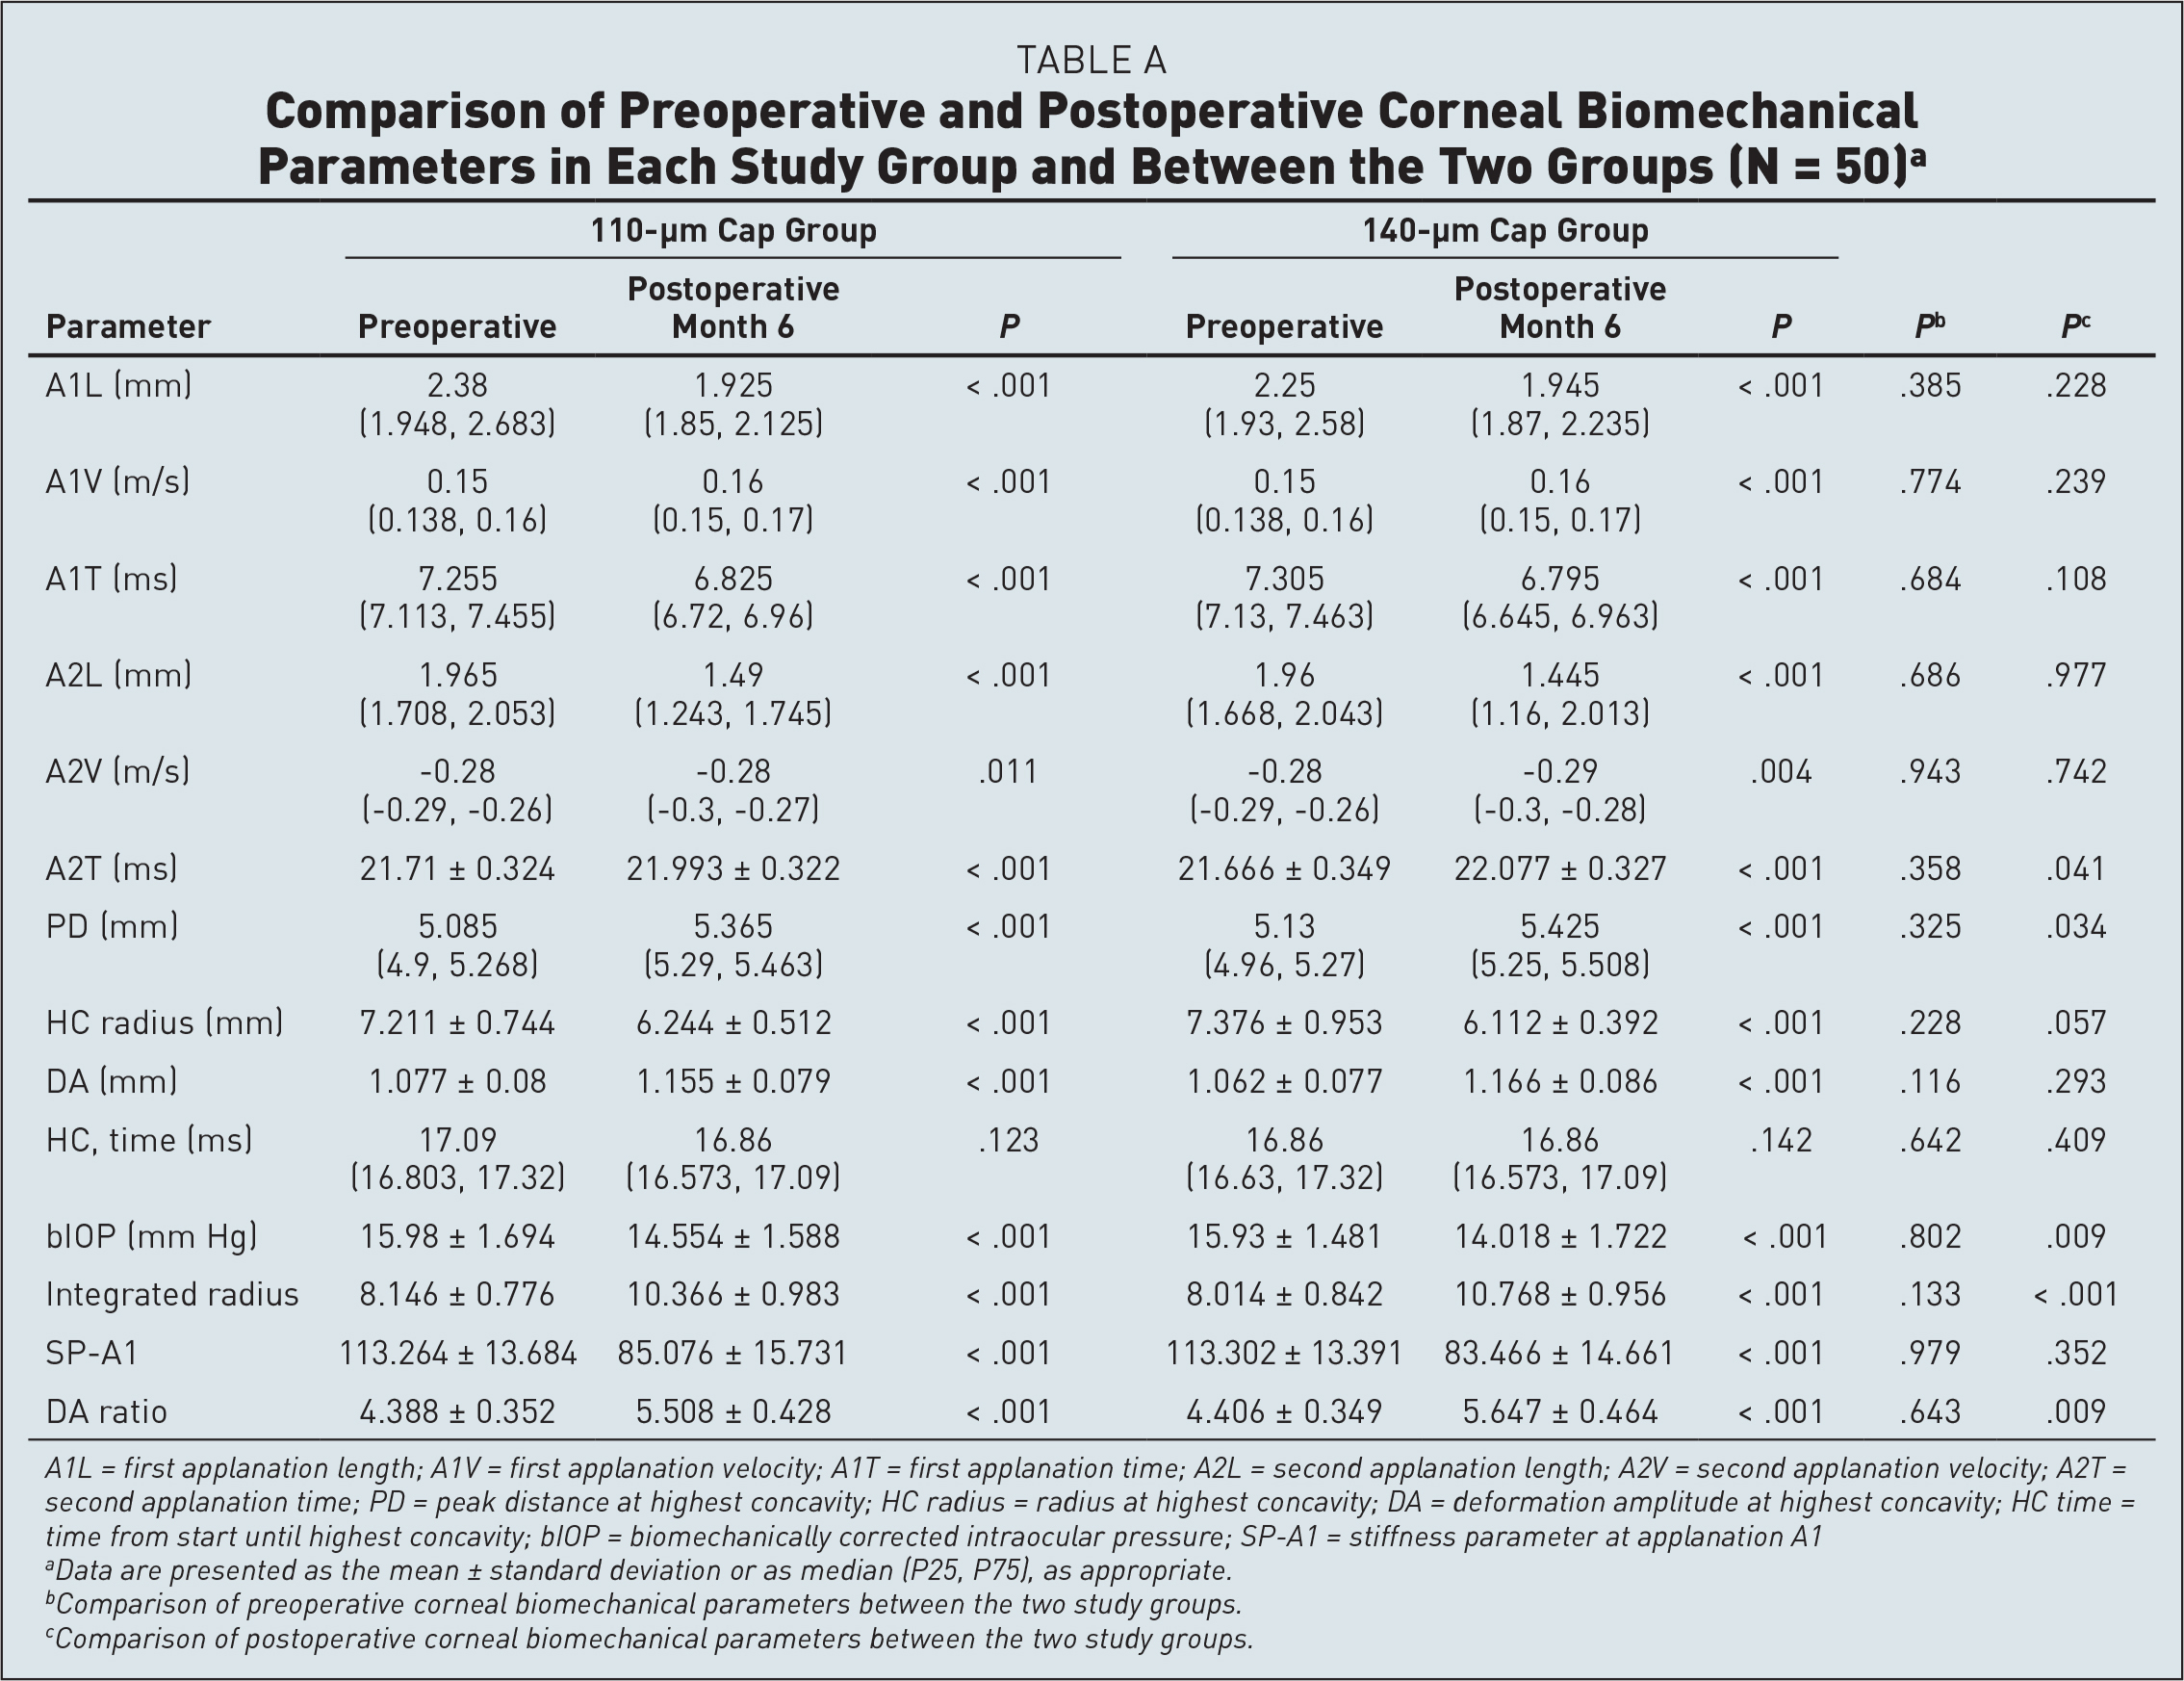 Comparison of Preoperative and Postoperative Corneal Biomechanical Parameters in Each Study Group and Between the Two Groups (N = 50)a